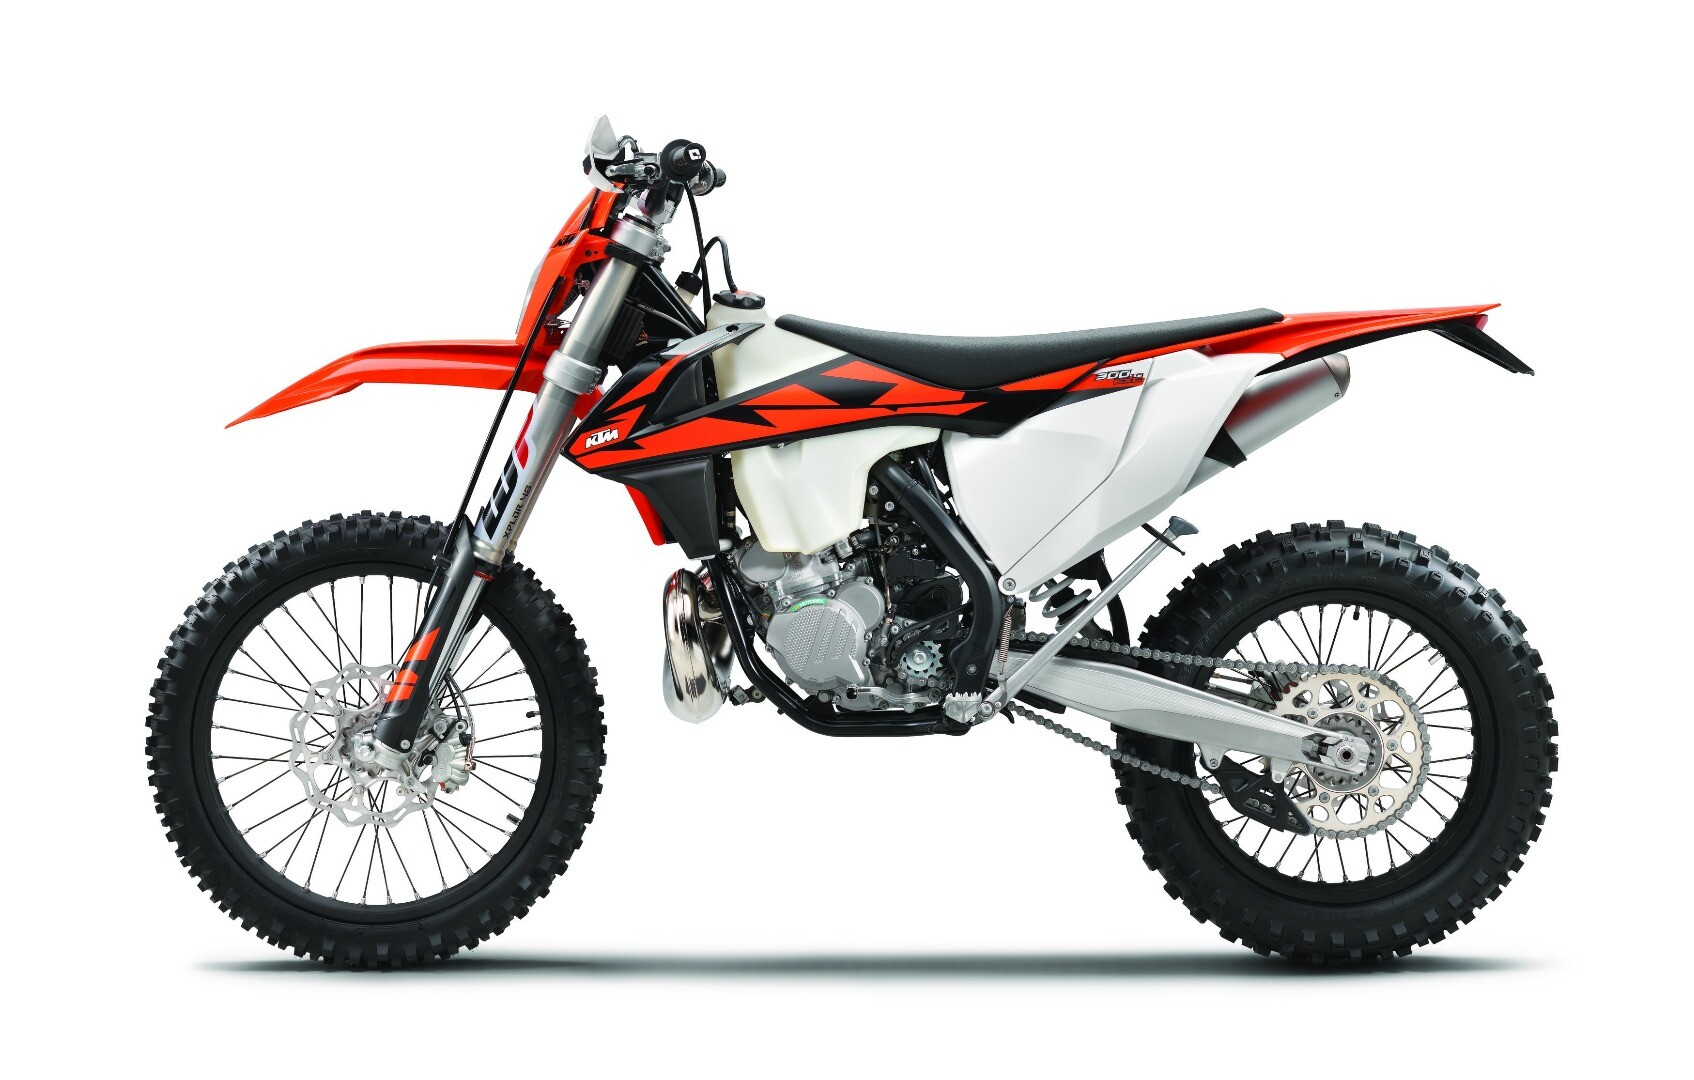 KTM breathes new life to the two-stroke engine with the new 250 and 300 EXC TPI